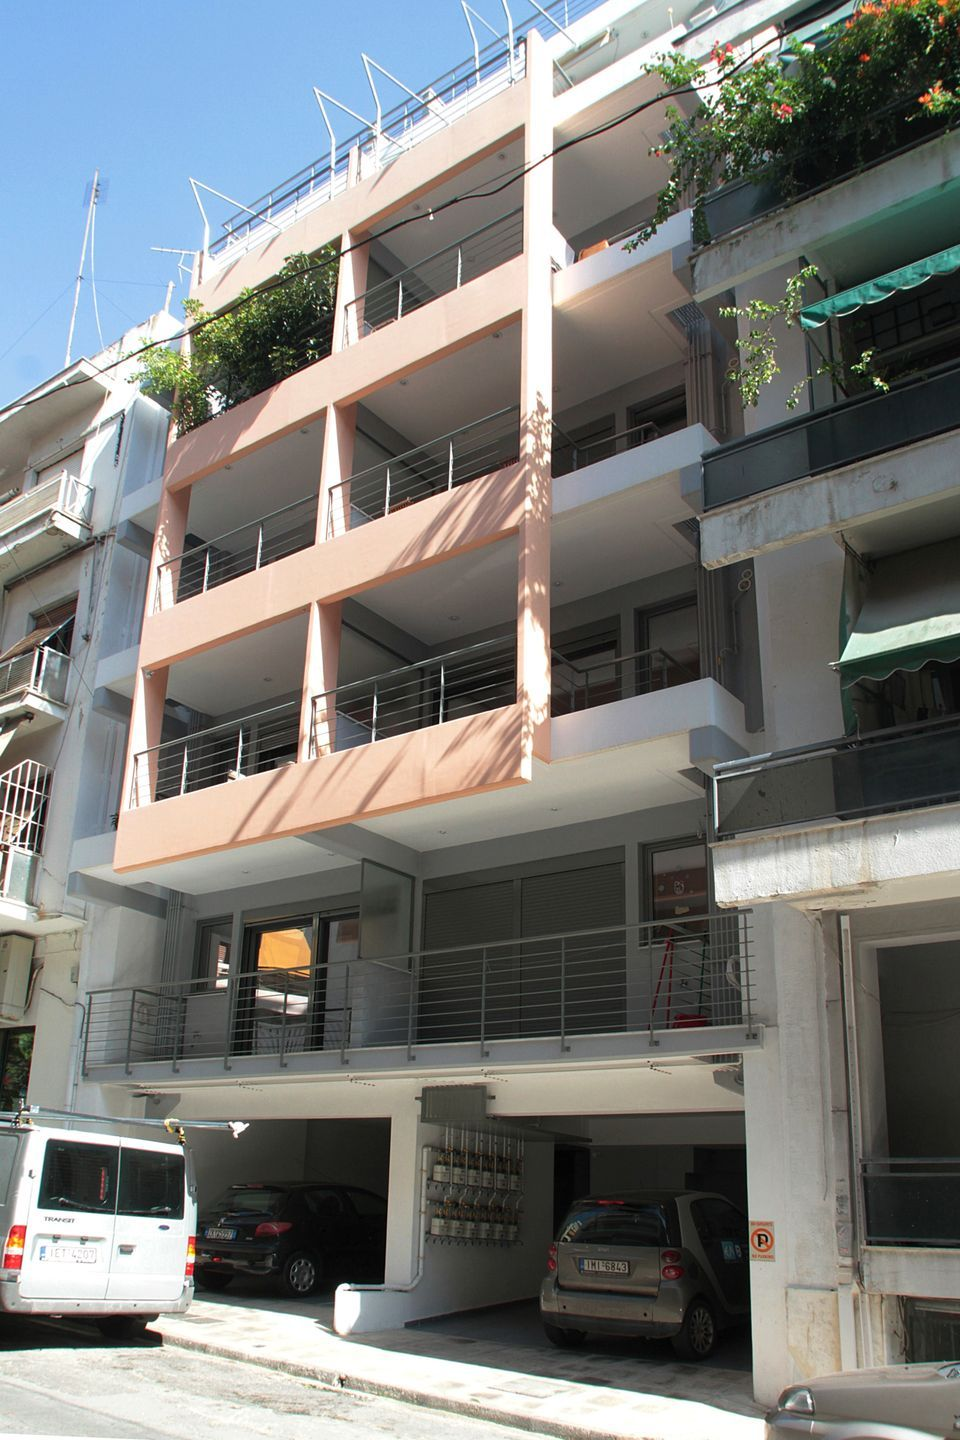 Elvita Apartments Athens - Αθήνα ? 2 Ημέρες (1 Διανυκτέρευση) ? 2 άτομα ? Χωρίς Πρωινό ? έως 30/04/2020 ? Free WiFi